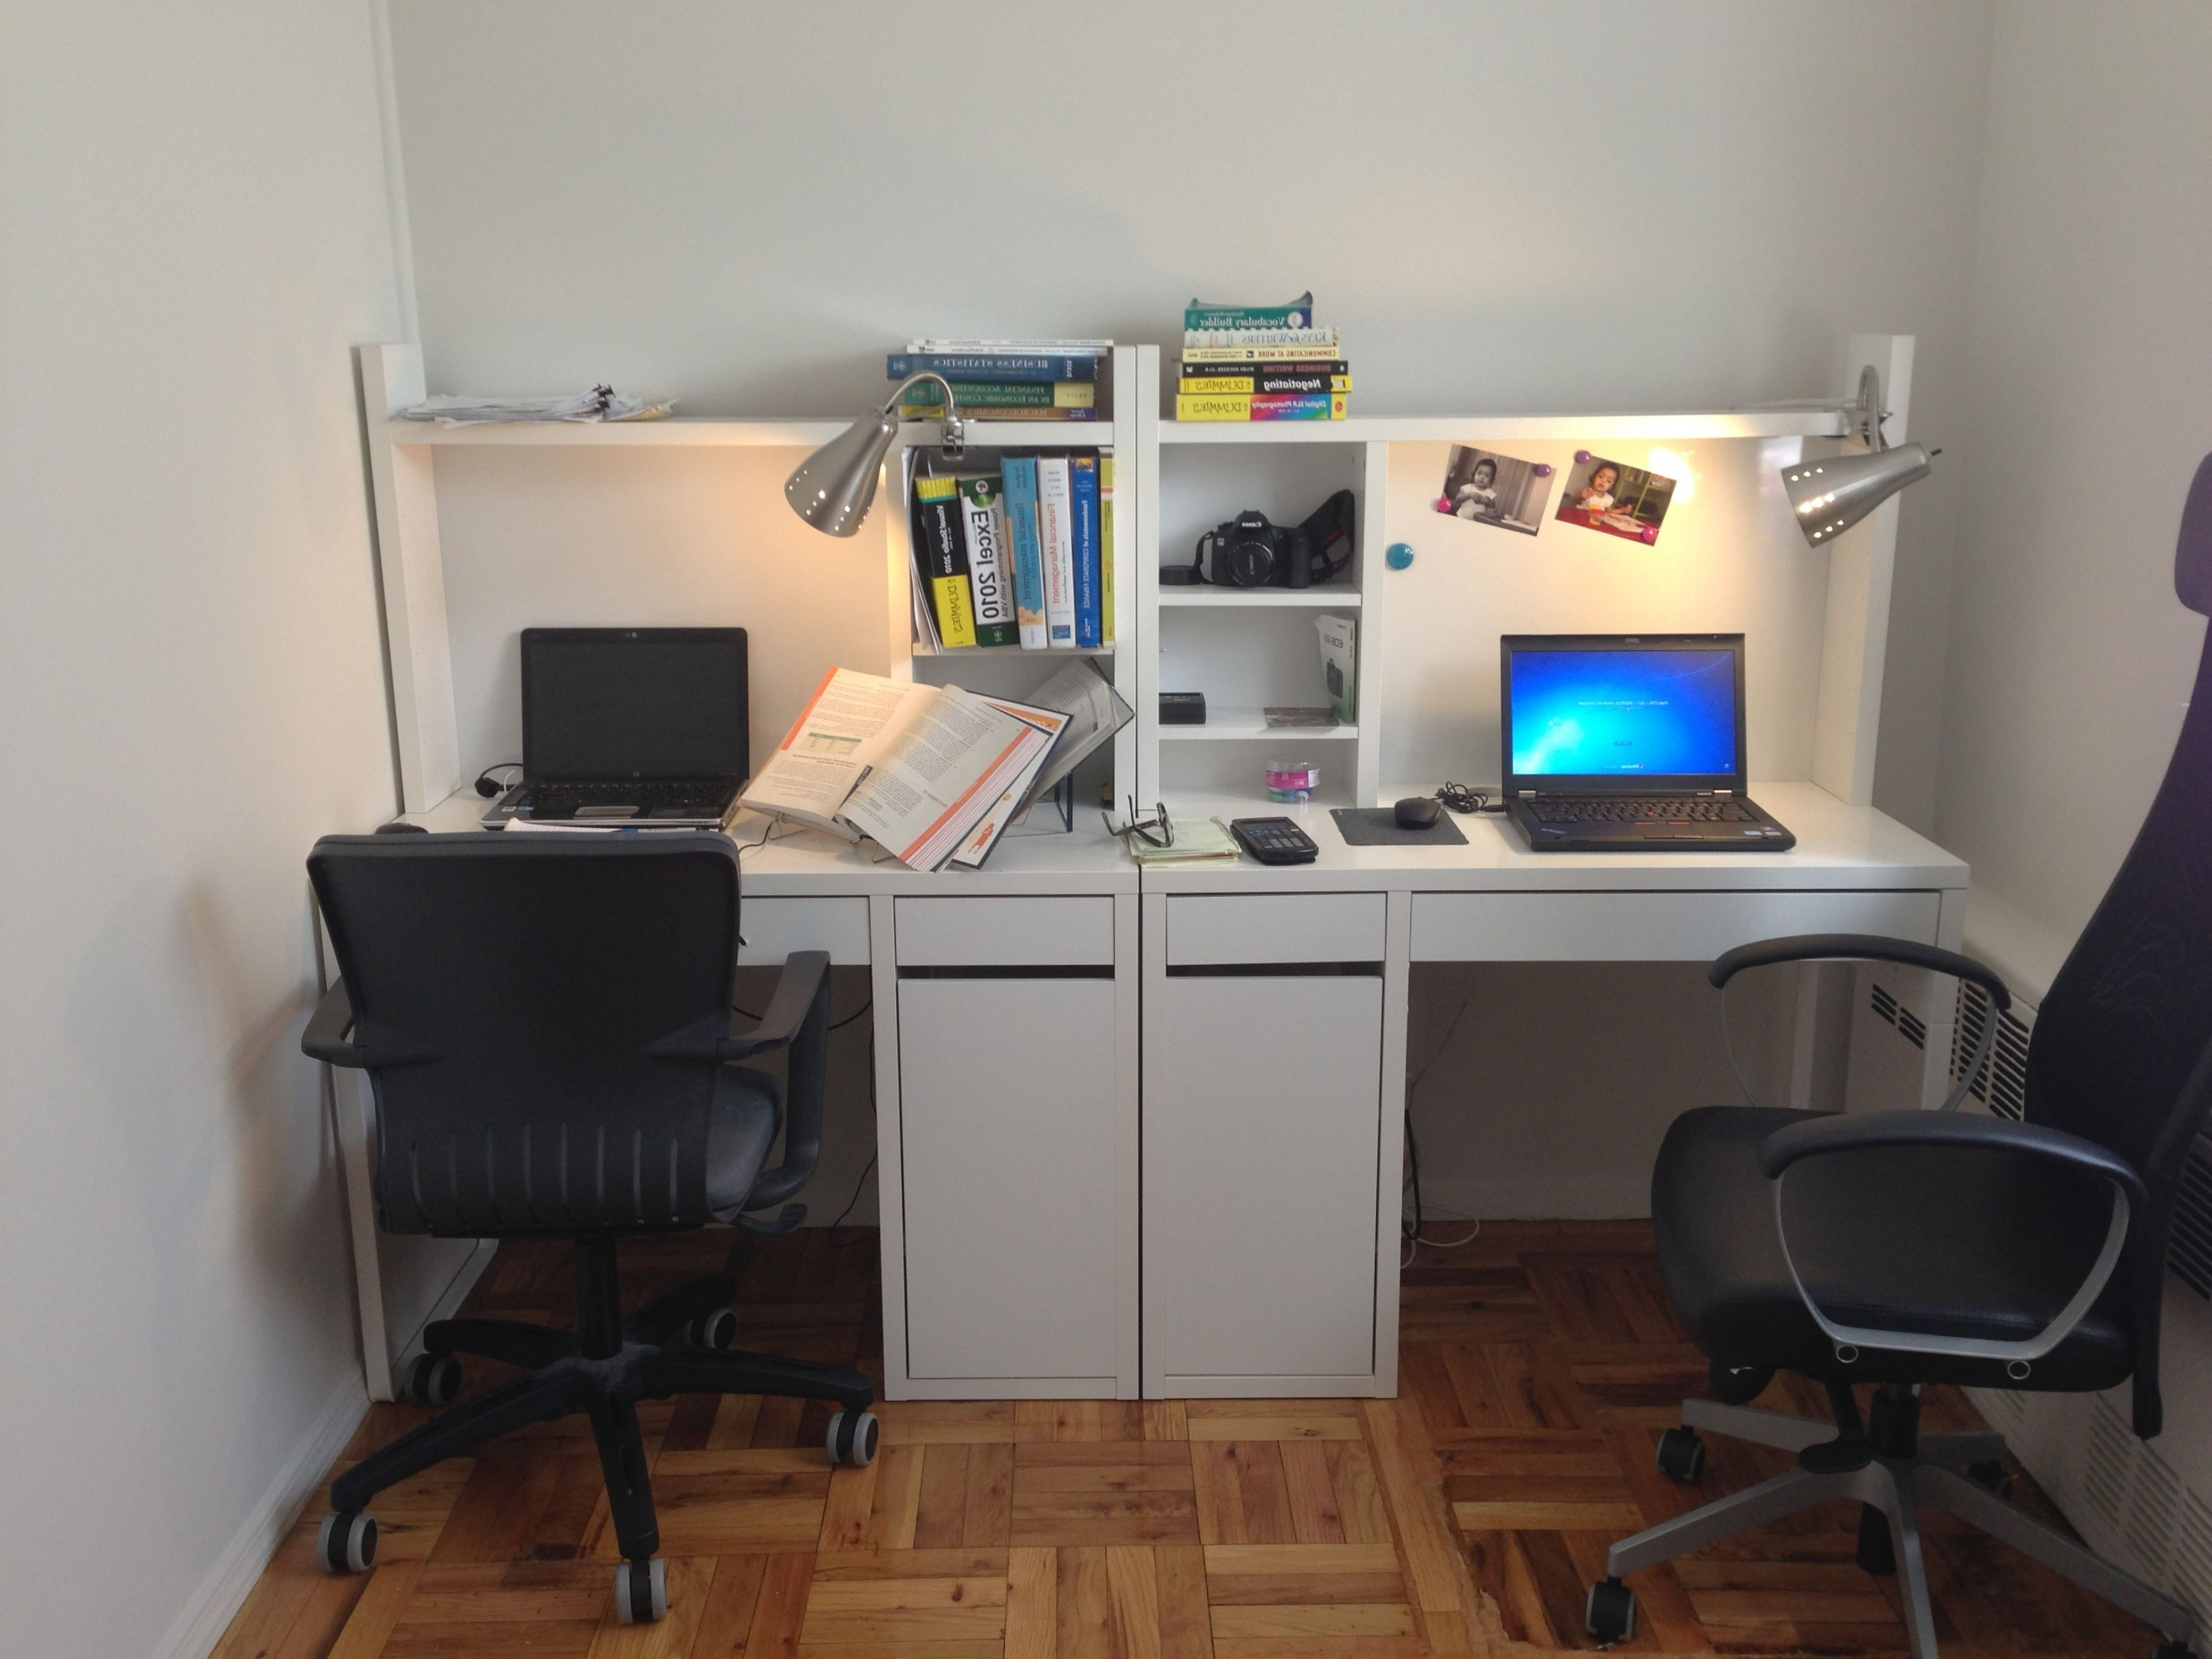 Escritorio Micke Bqdd Two Micke Work Stations From Ikea and Clip On Desk Lights From Home